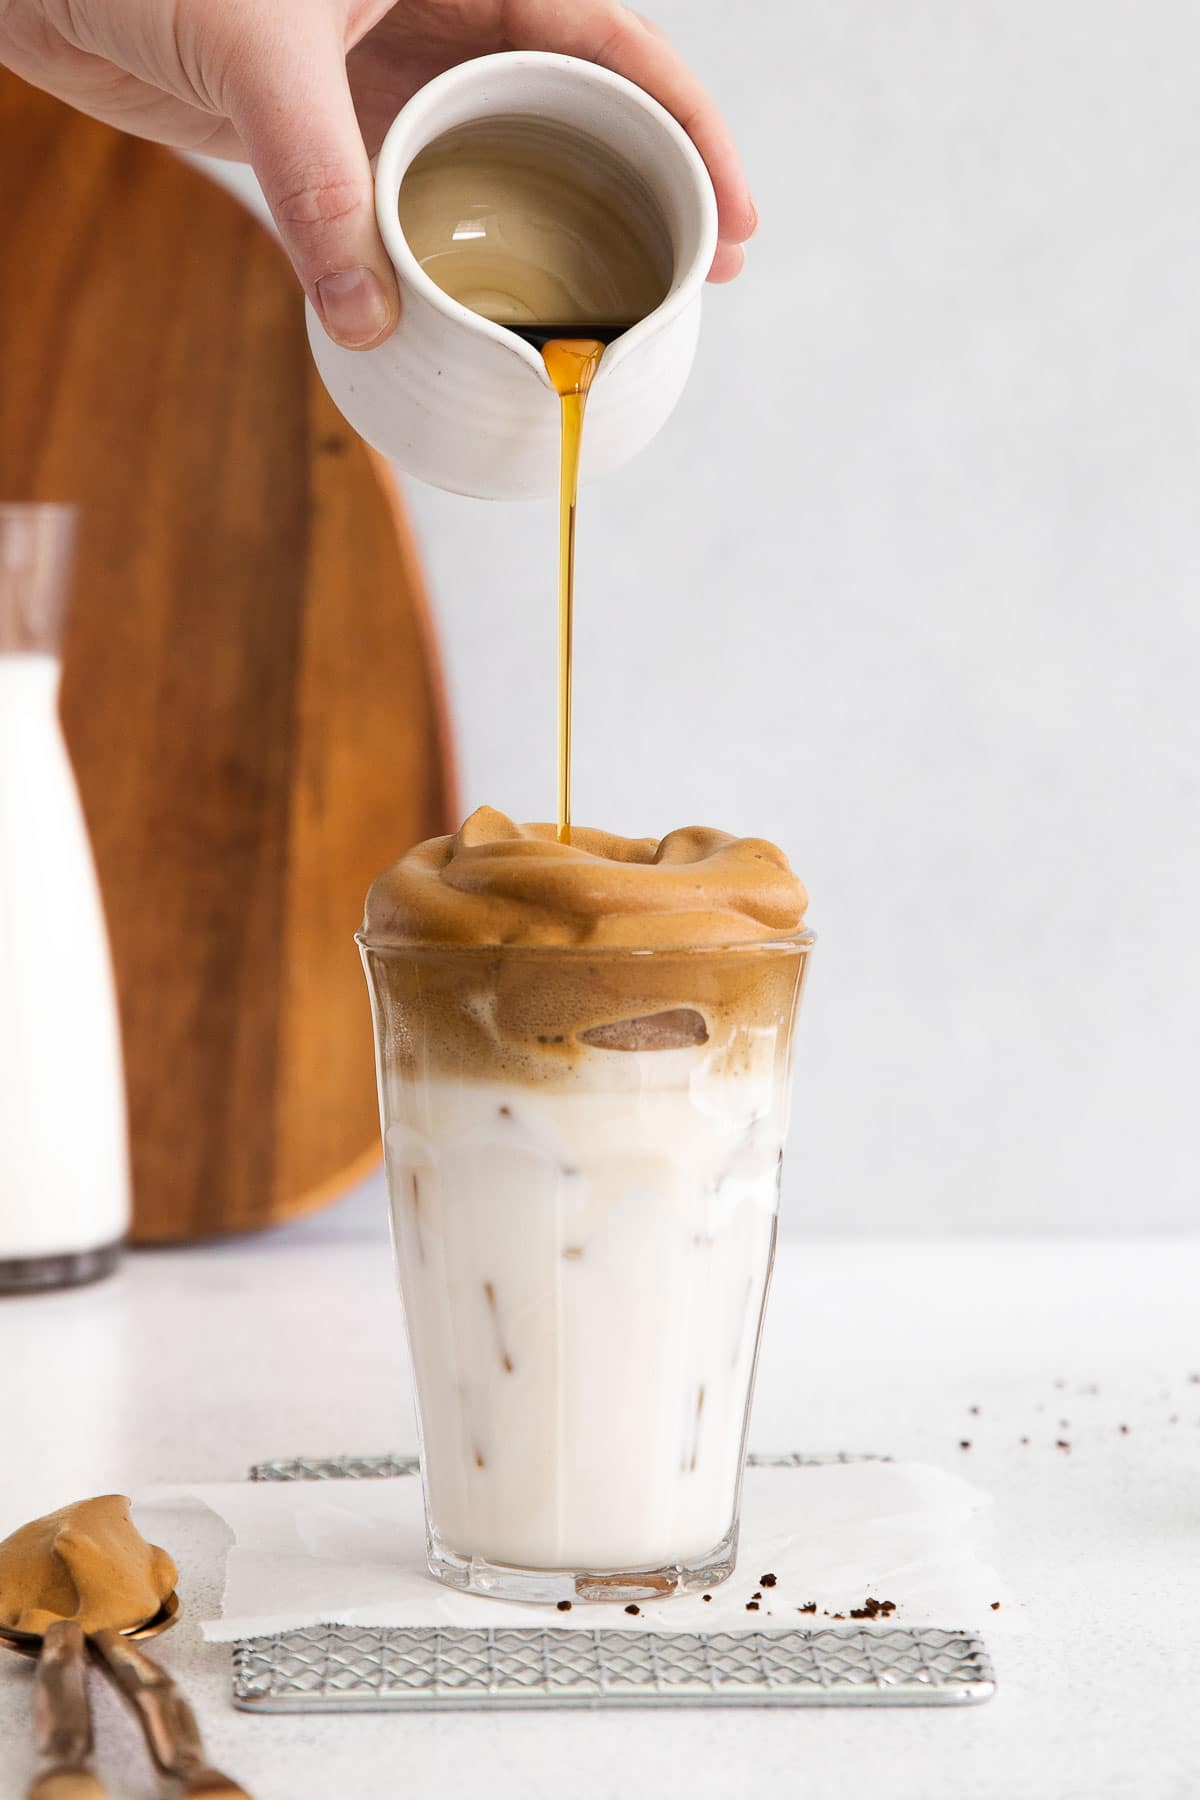 maple syrup being poured over a glass of whipped coffee